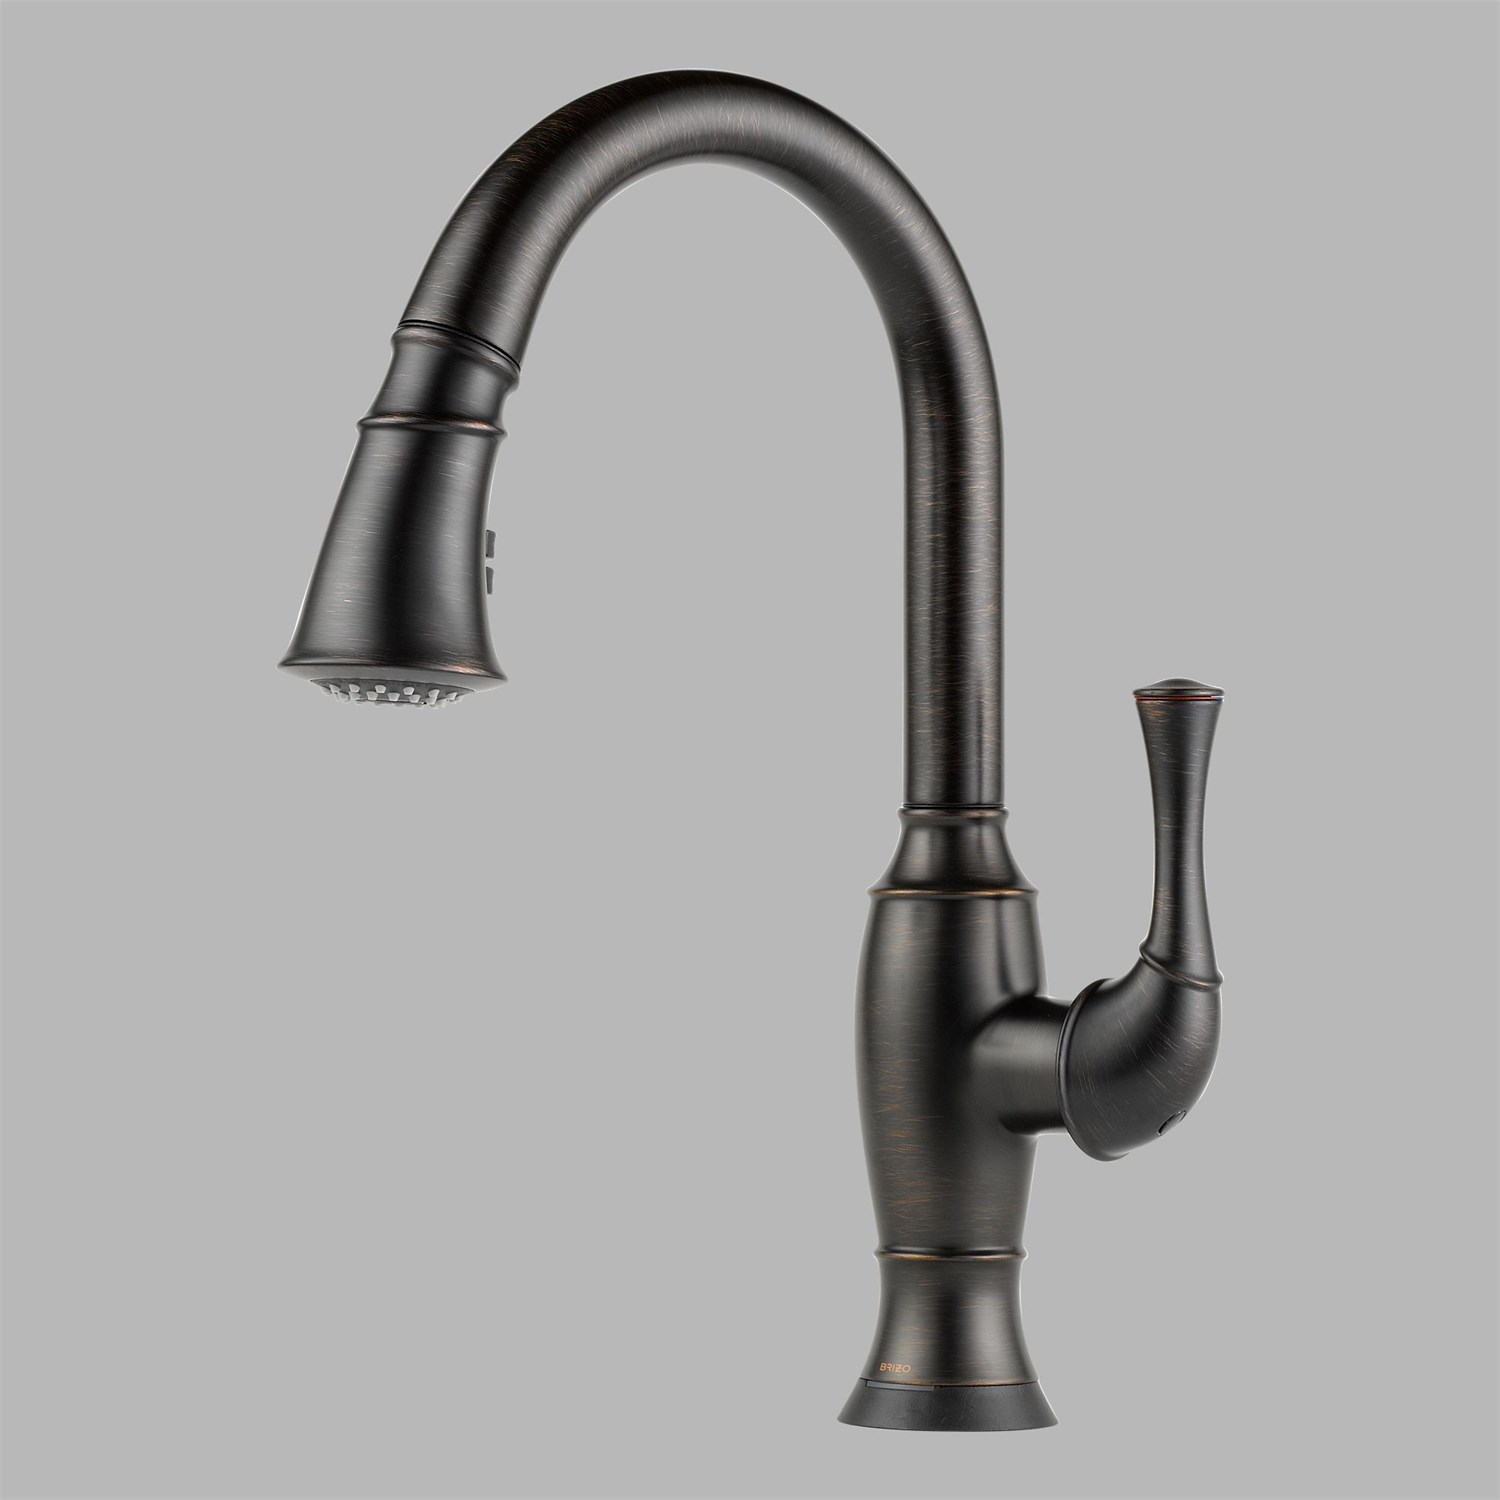 touch activated kitchen faucet bridge kitchen faucets brizo kitchen faucets touch sensor kitchen faucet brizo talo brizzo high end faucets one touch kitchen faucet matte black kitchen fauce